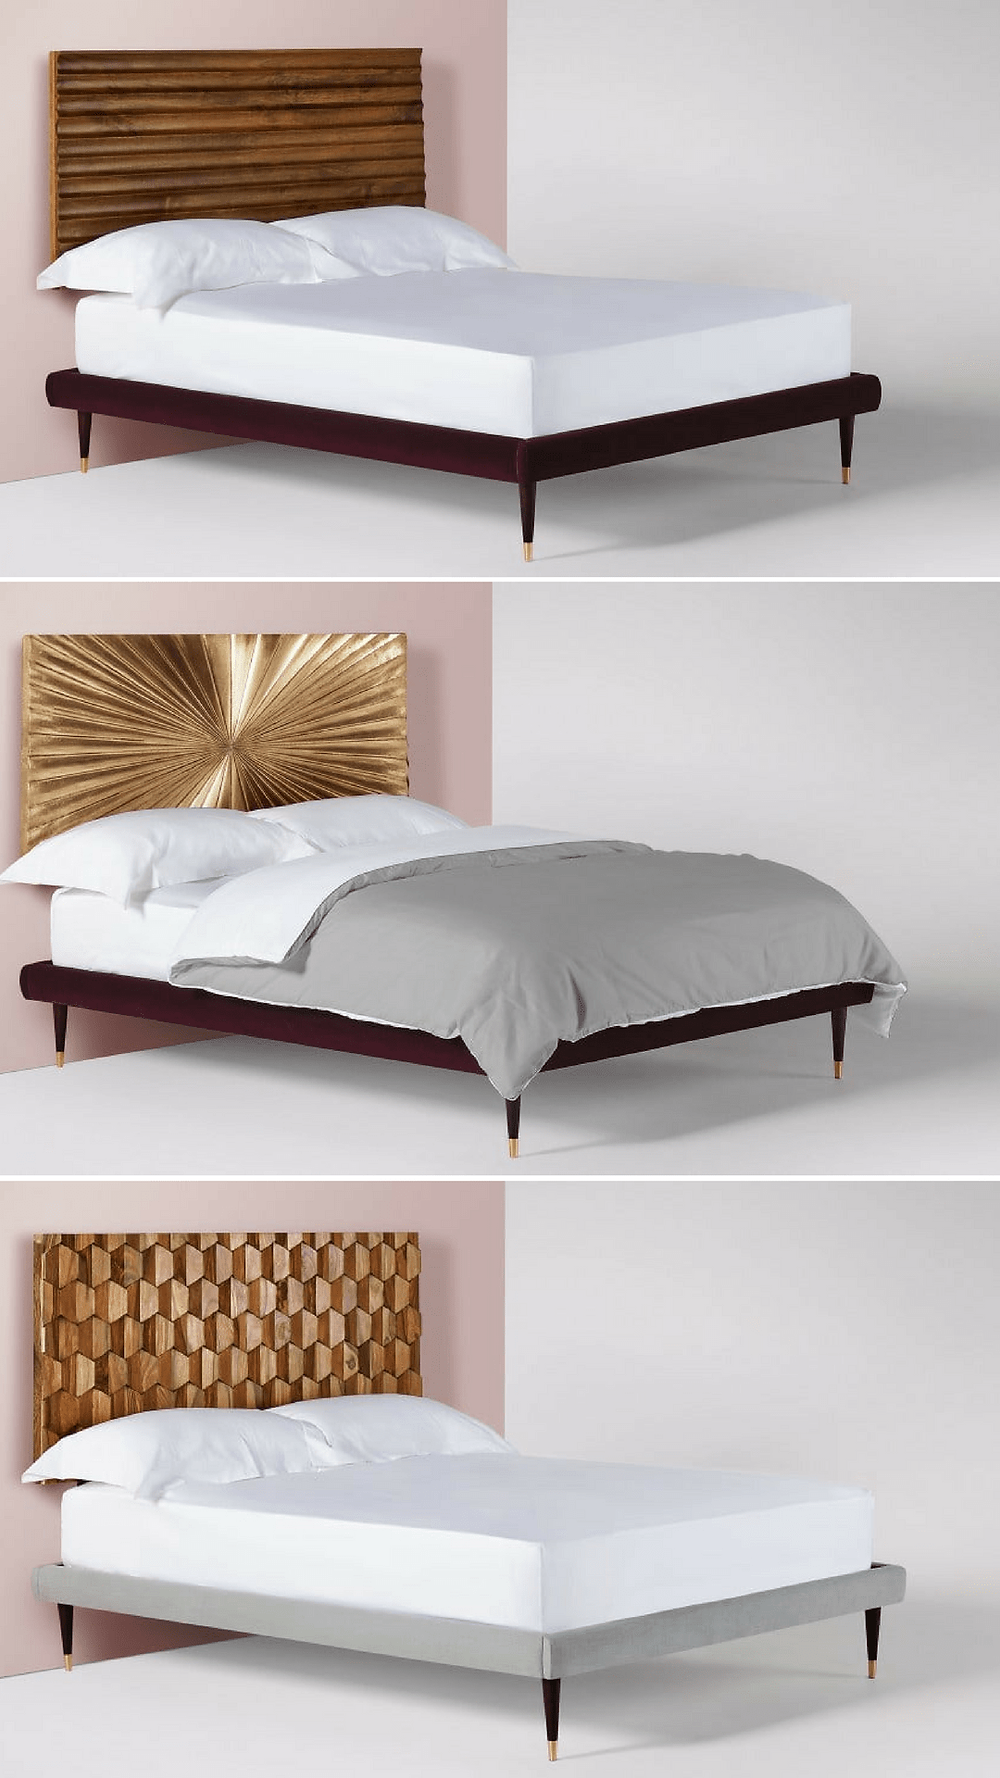 New Swoon Editions Limited edition headboards